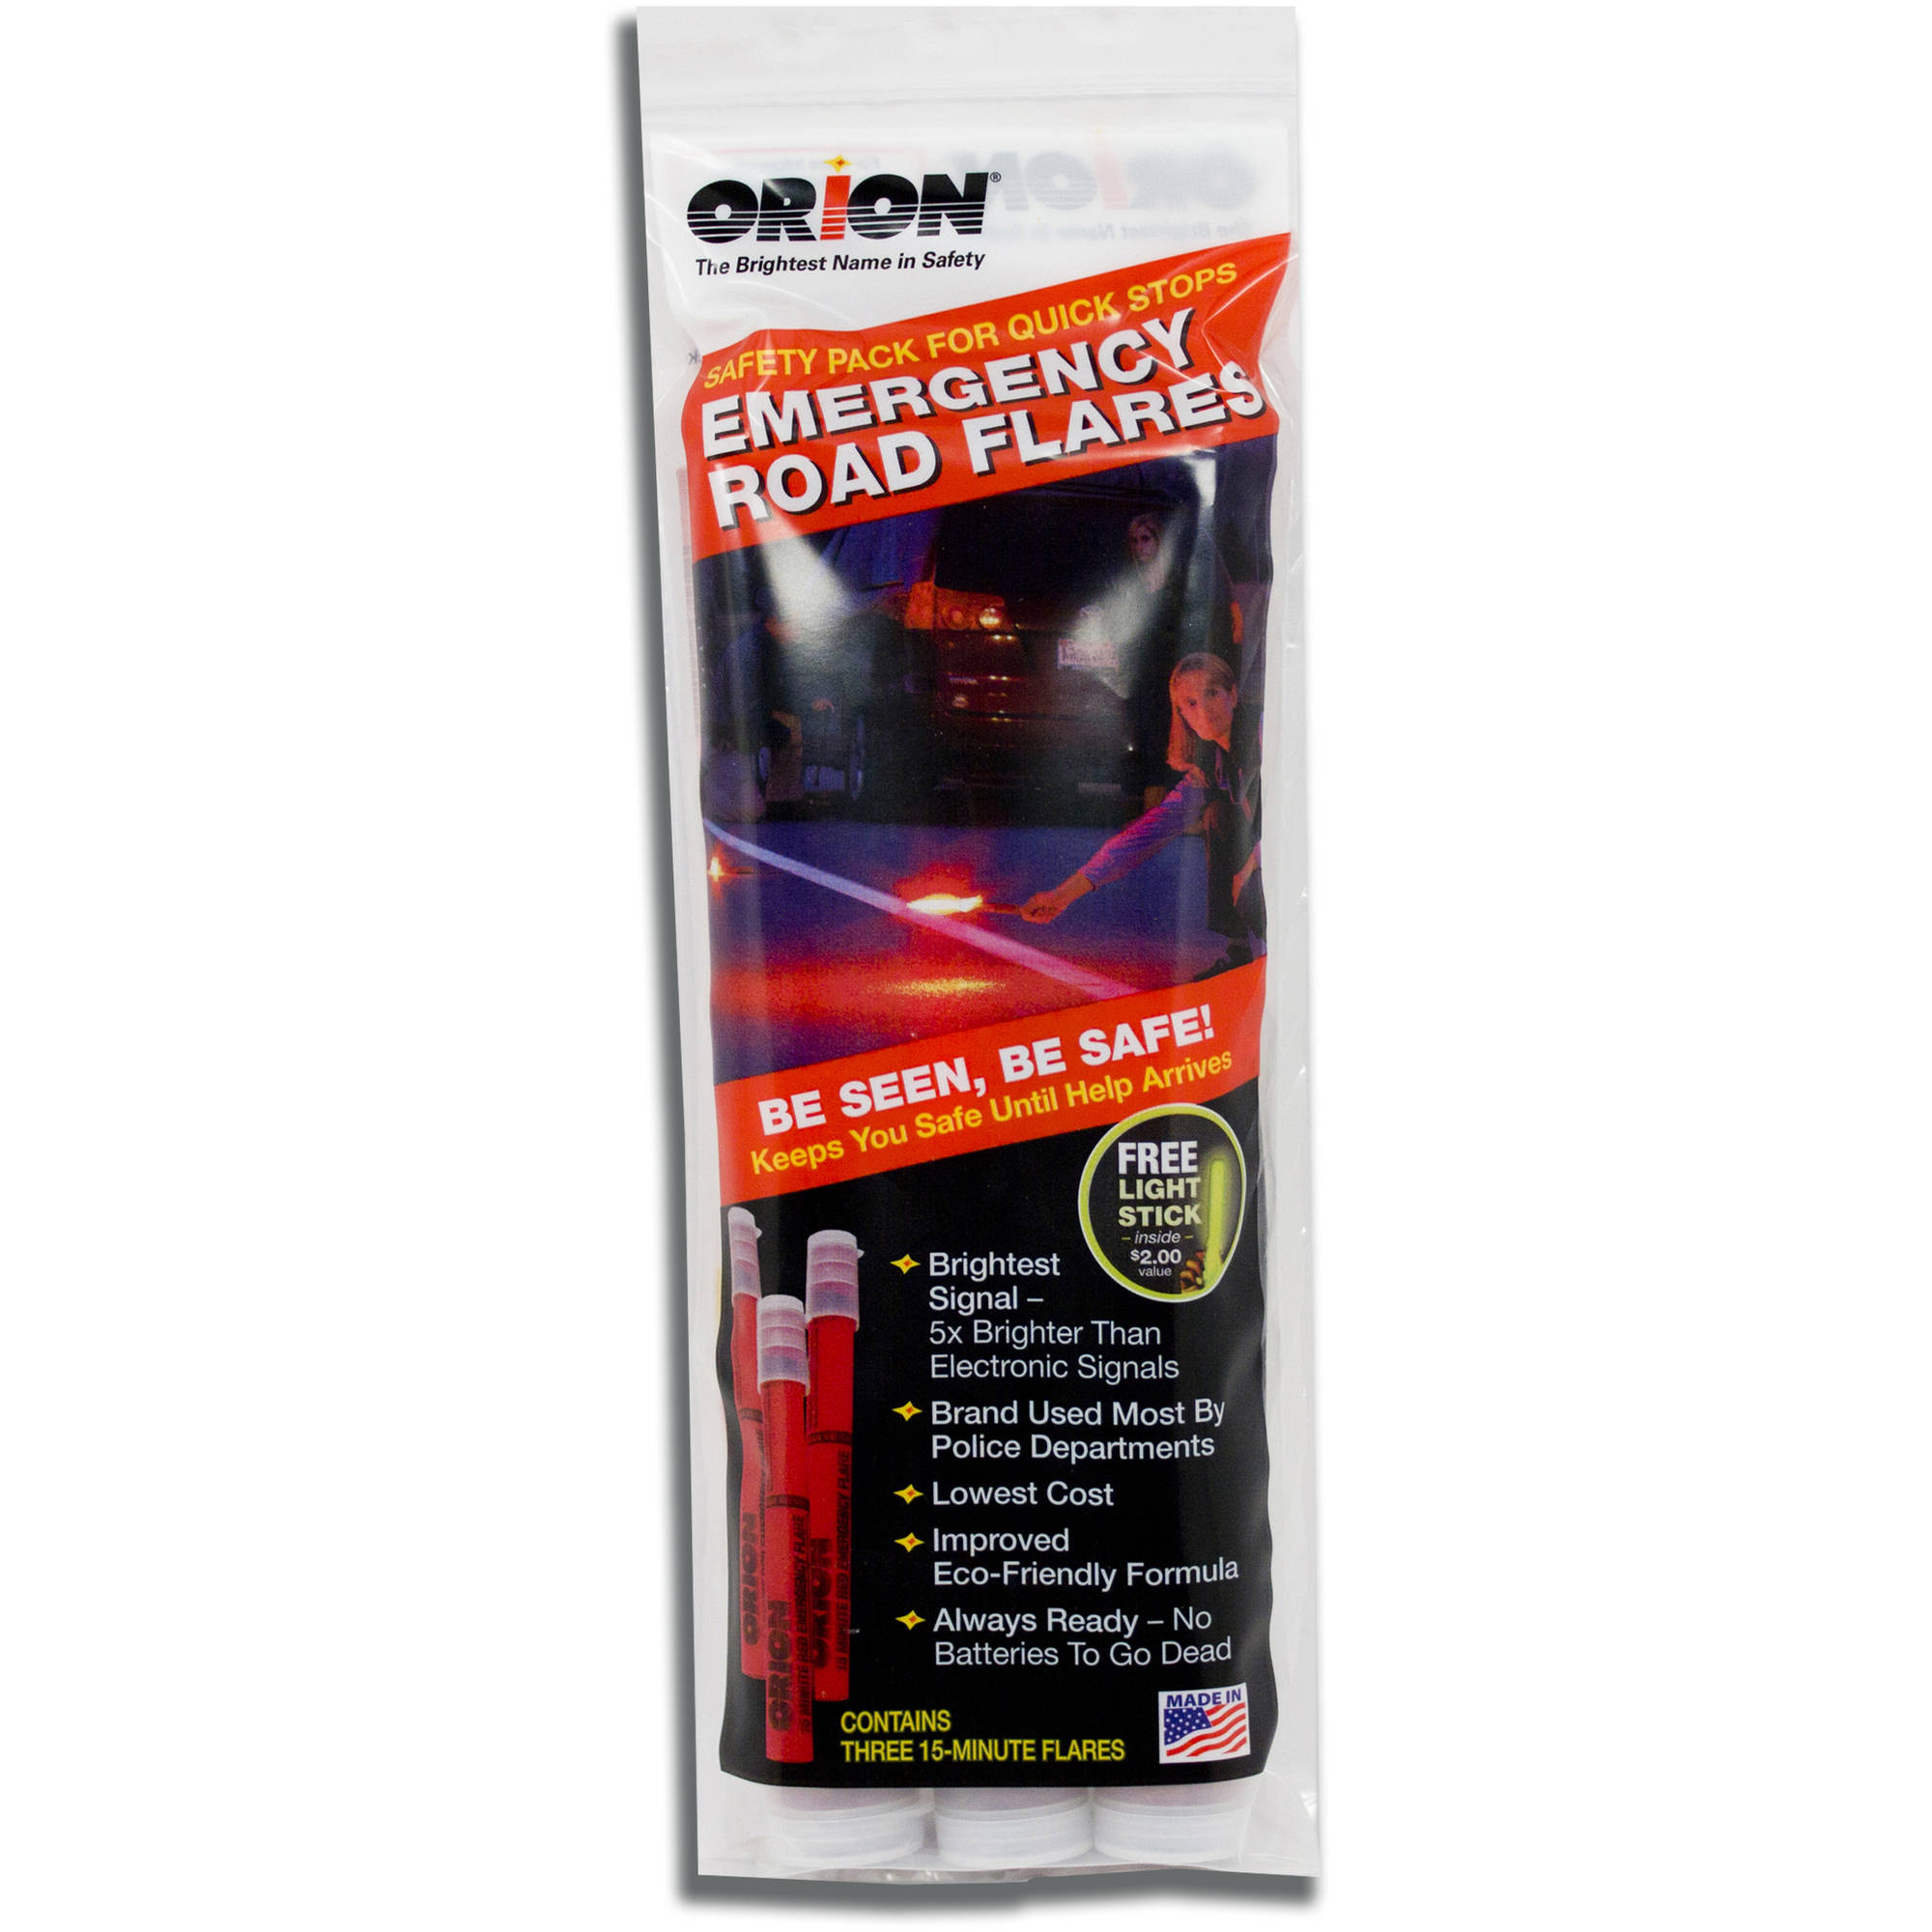 Orion Flares 15-Minute Waxed Flares with 8-Hour Light Stick